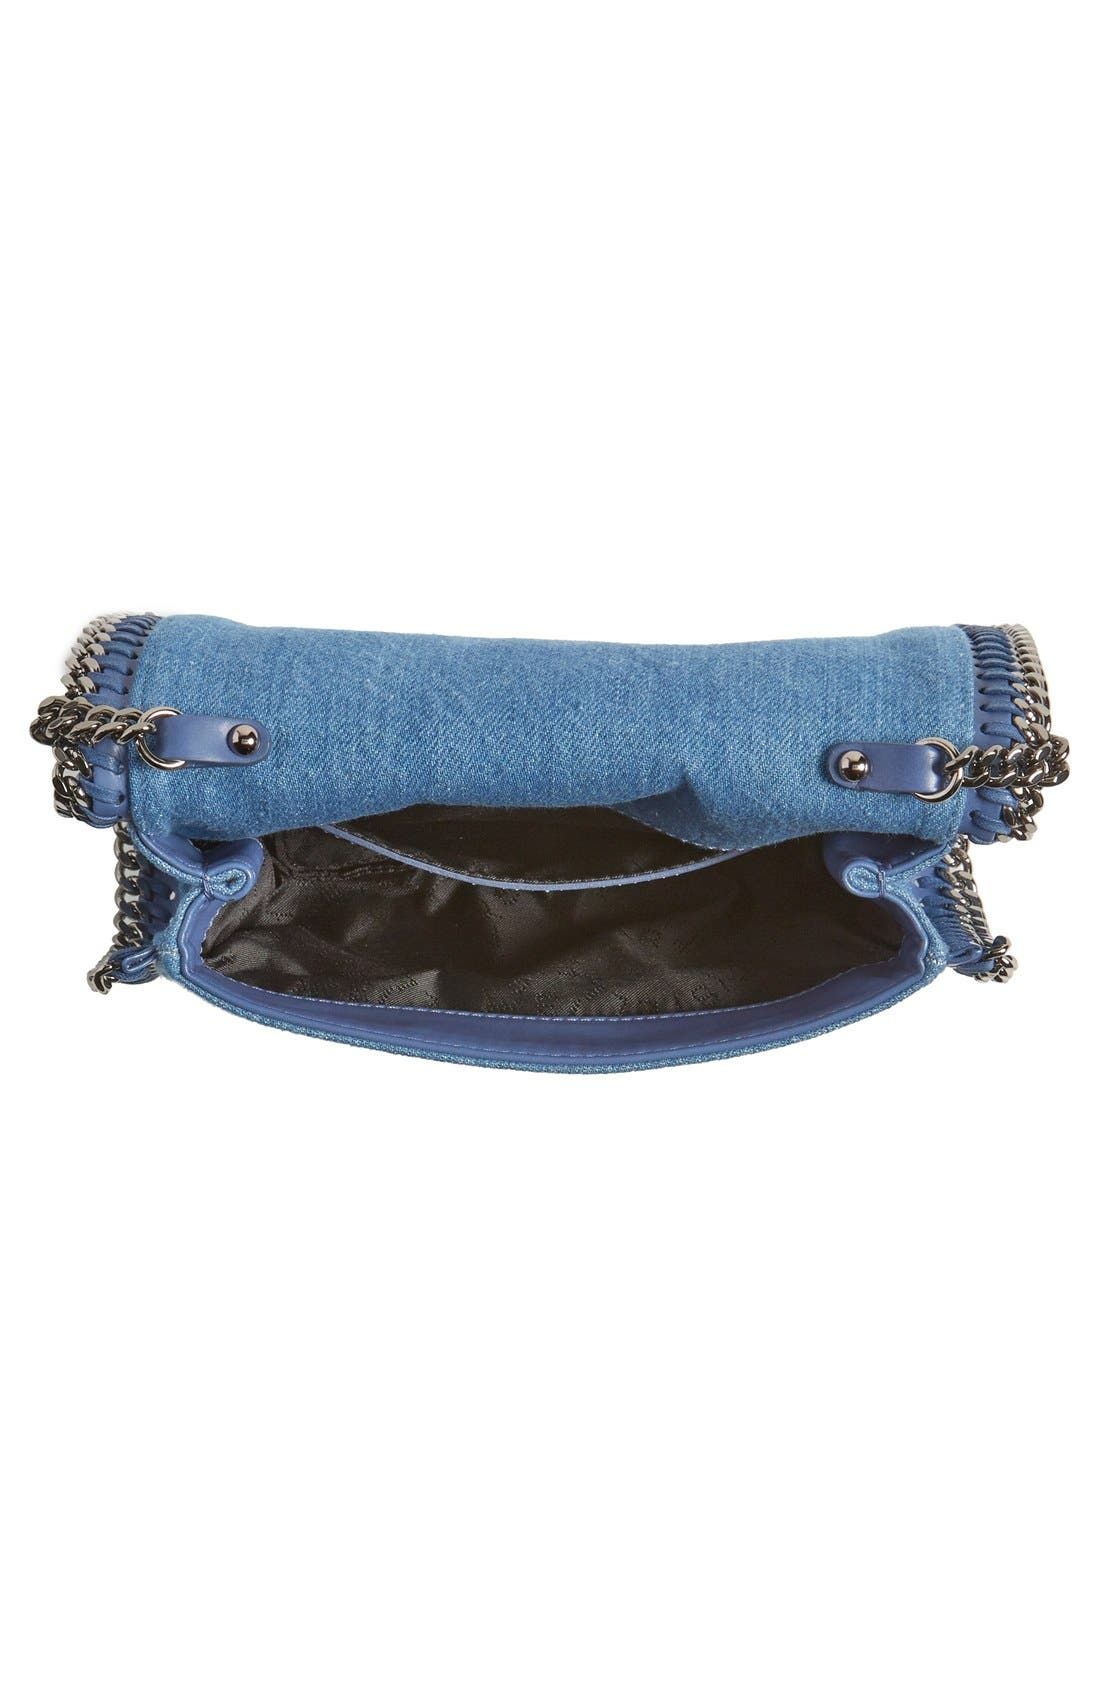 Alternate Image 4  - Stella McCartney 'Falabella - Adorned' Denim Crossbody Bag